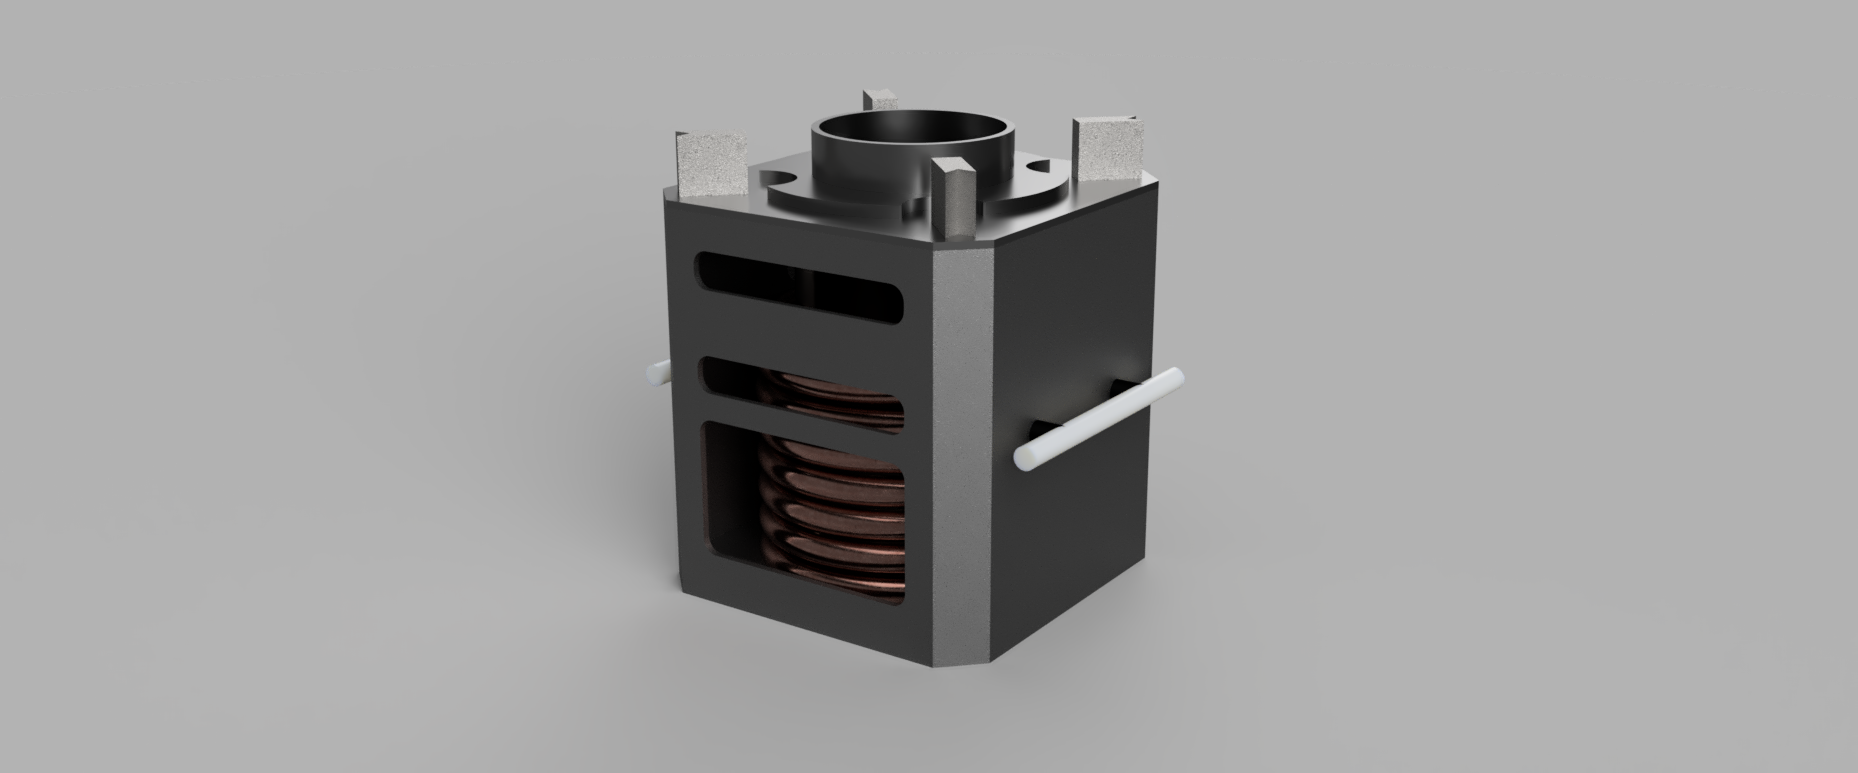 STOVE_BOX_DESIGN_2021-Mar-30_01-03-29PM-000_CustomizedView17639143203_pngpng